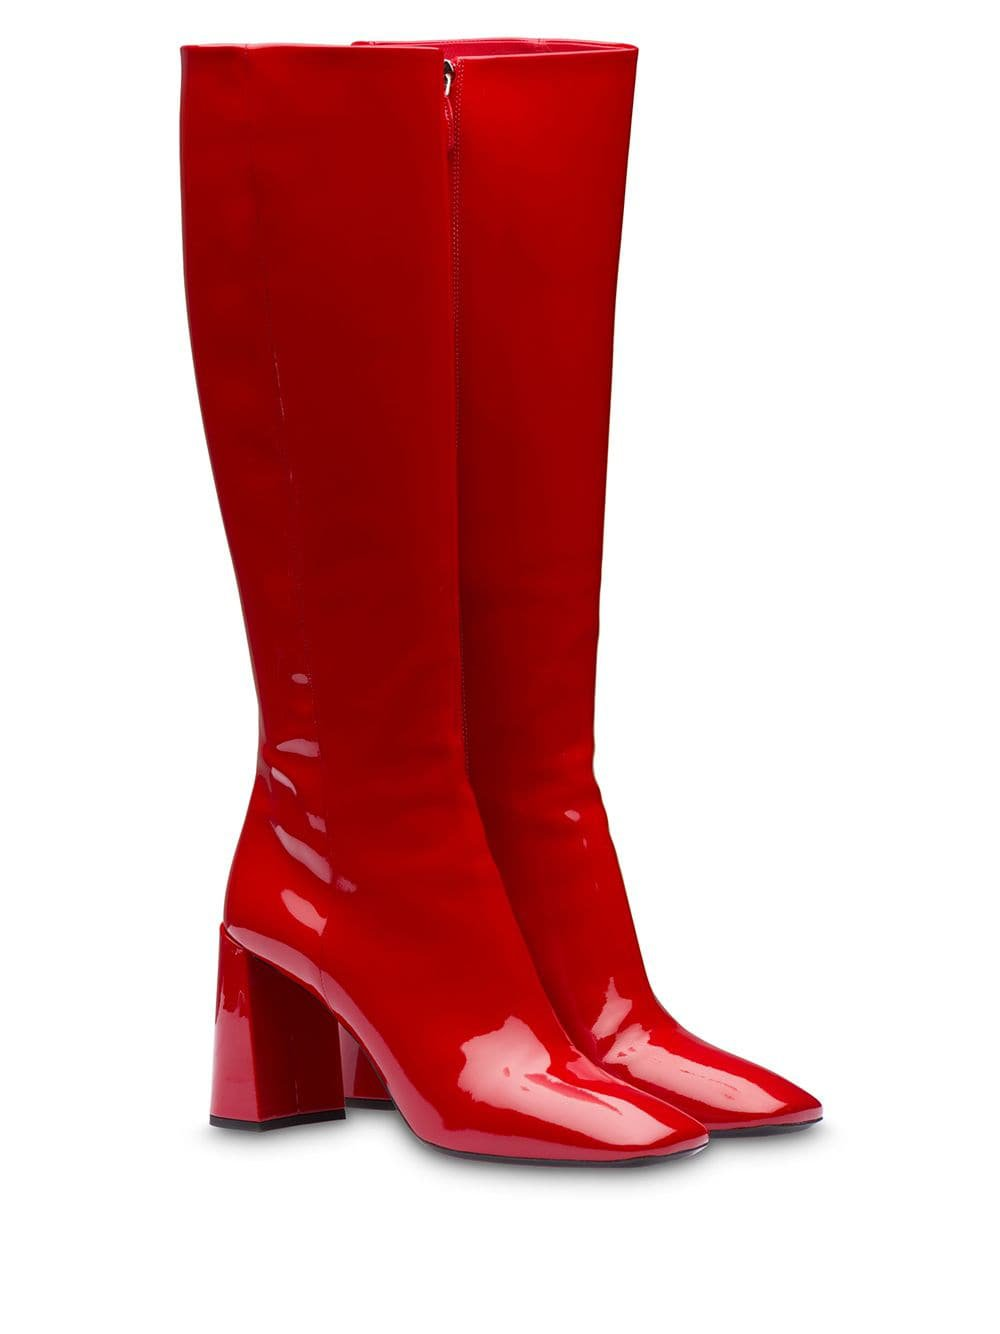 Prada patent leather boots $1,200 - Shop AW19 Online - Fast Delivery, Price